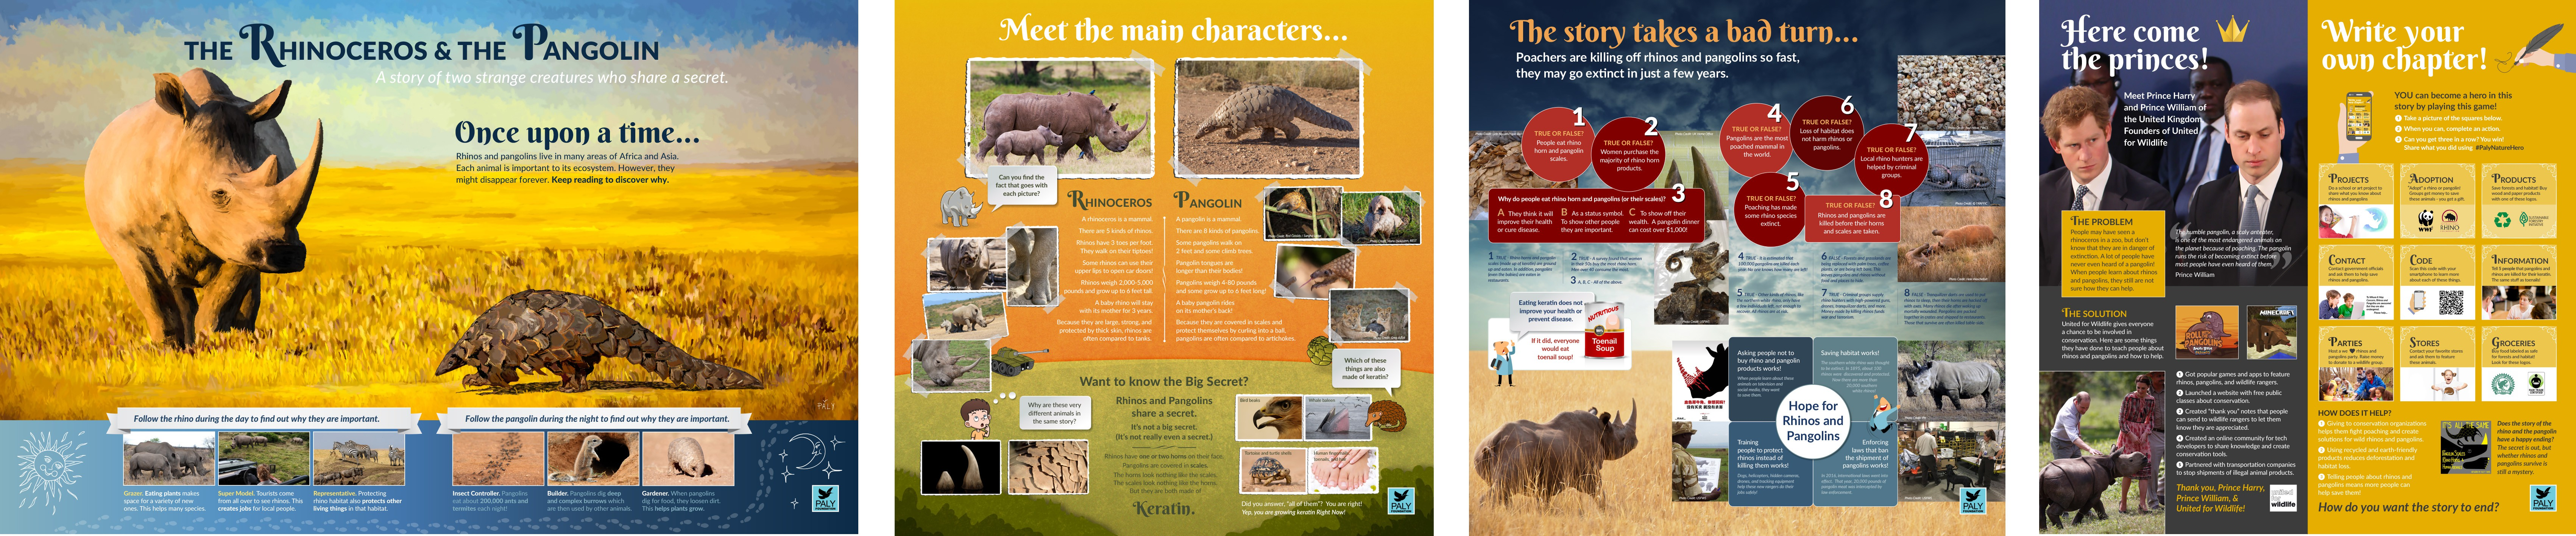 Rhinos and Pangolins Exhibit, part 2